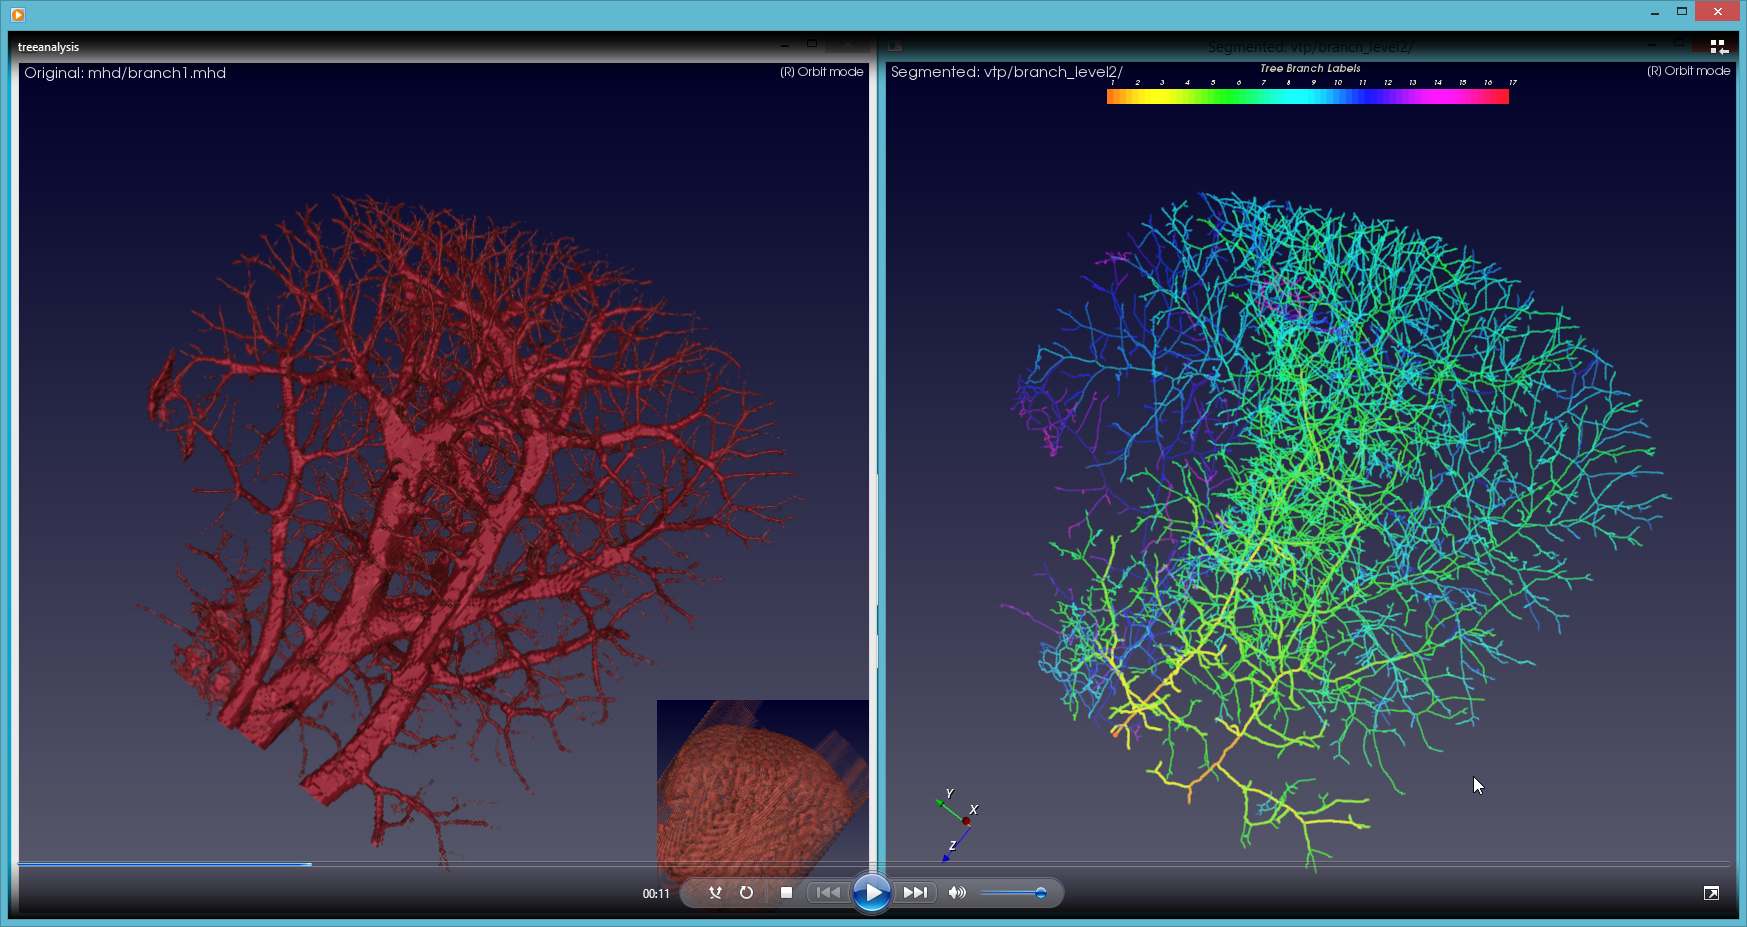 Screen shot of computer software tool showing blood vessels.